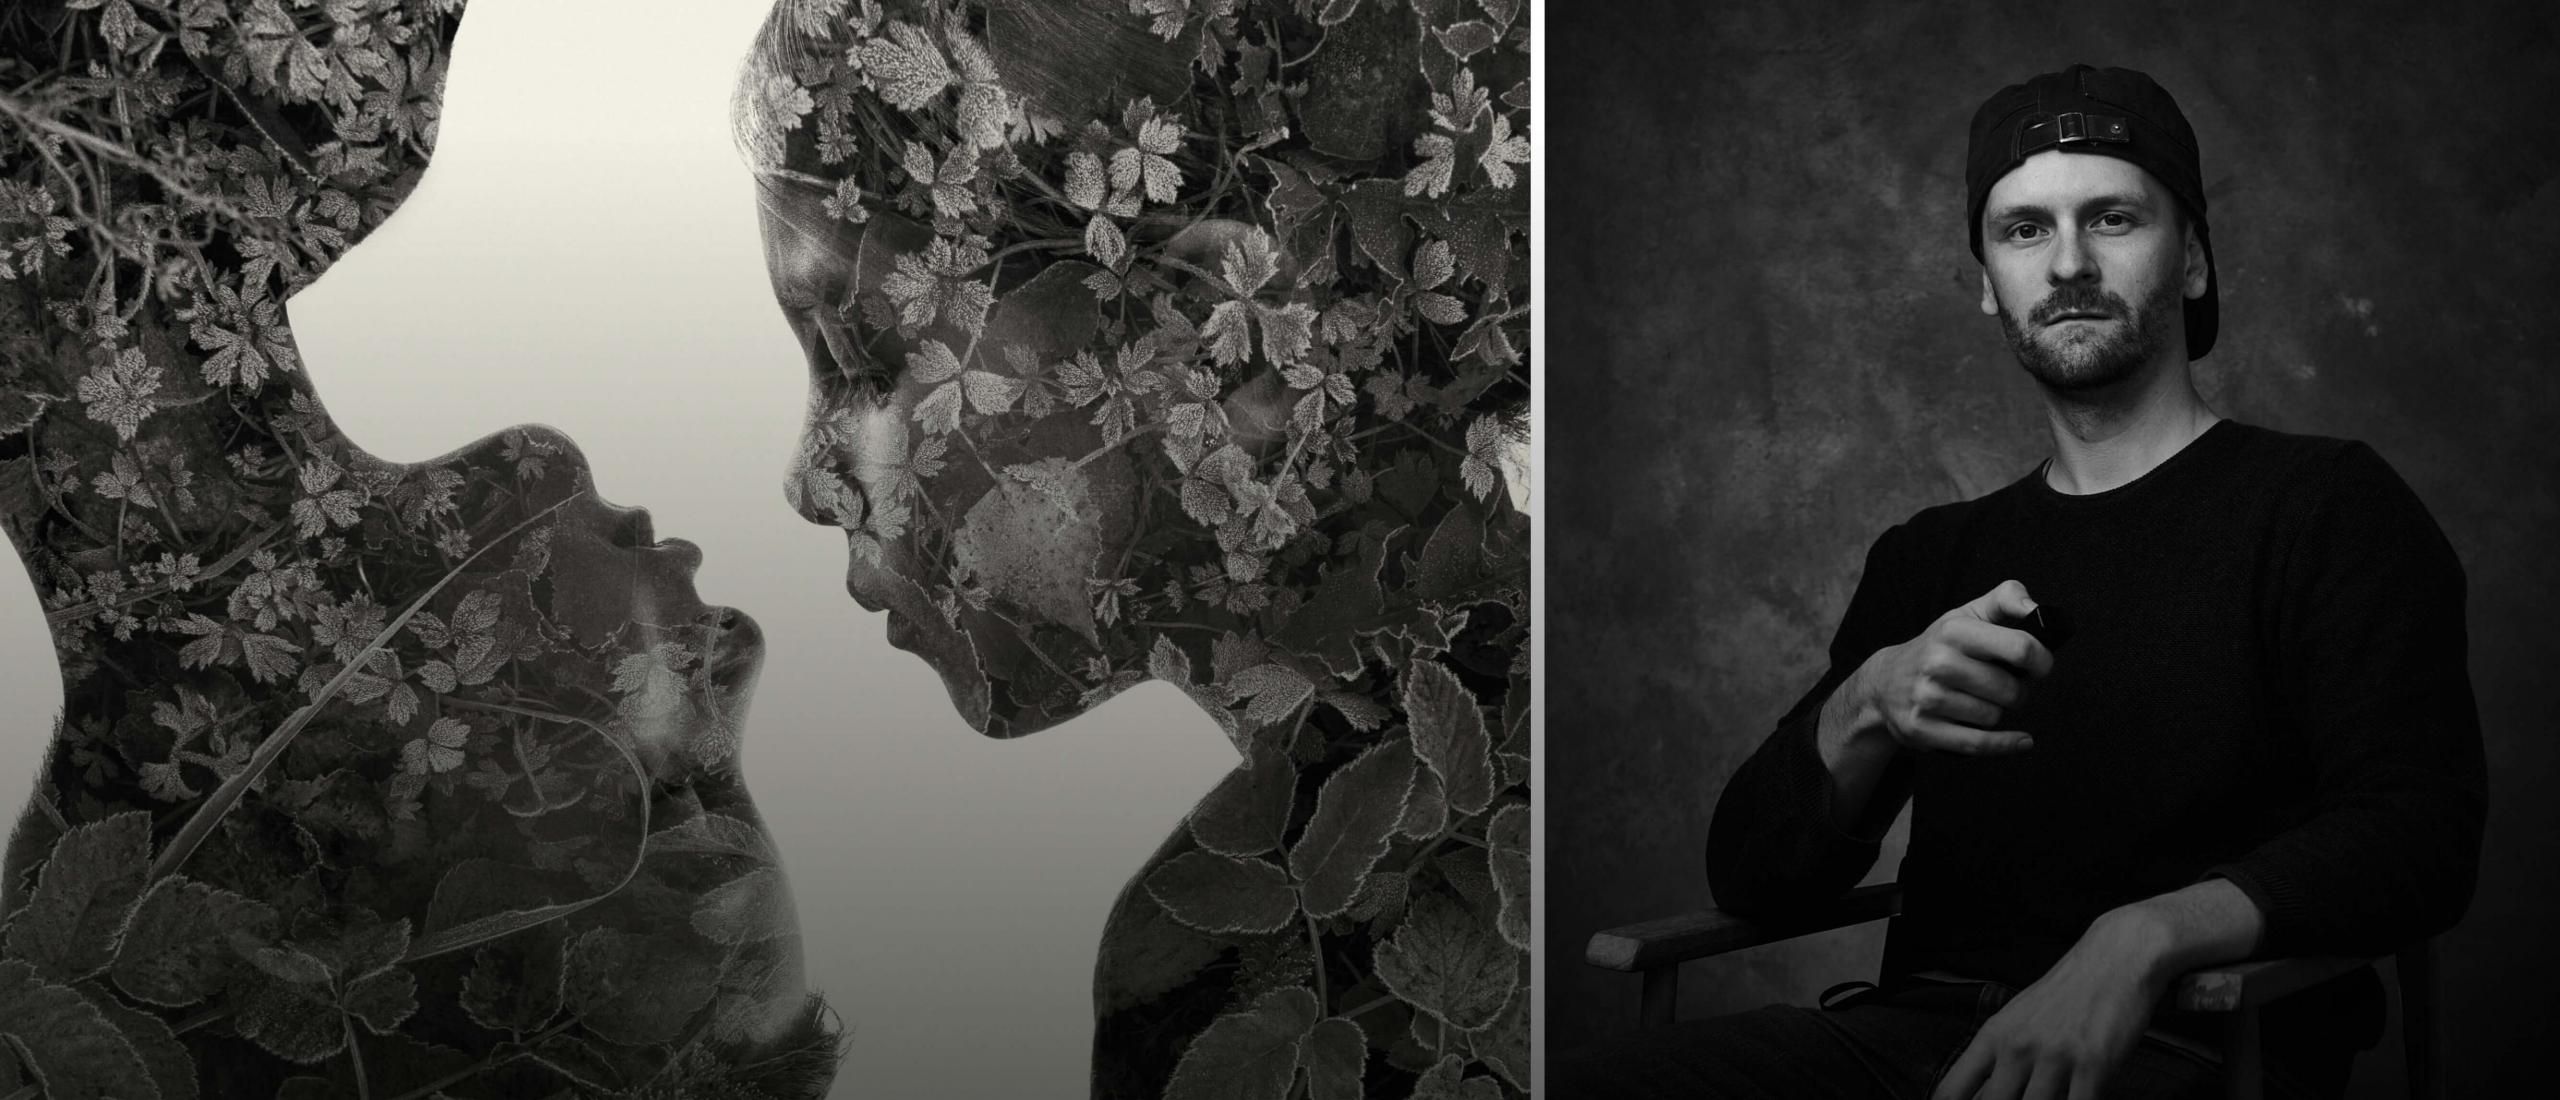 Exhibition at the Nordic Institute on Åland with Christoffer Relander